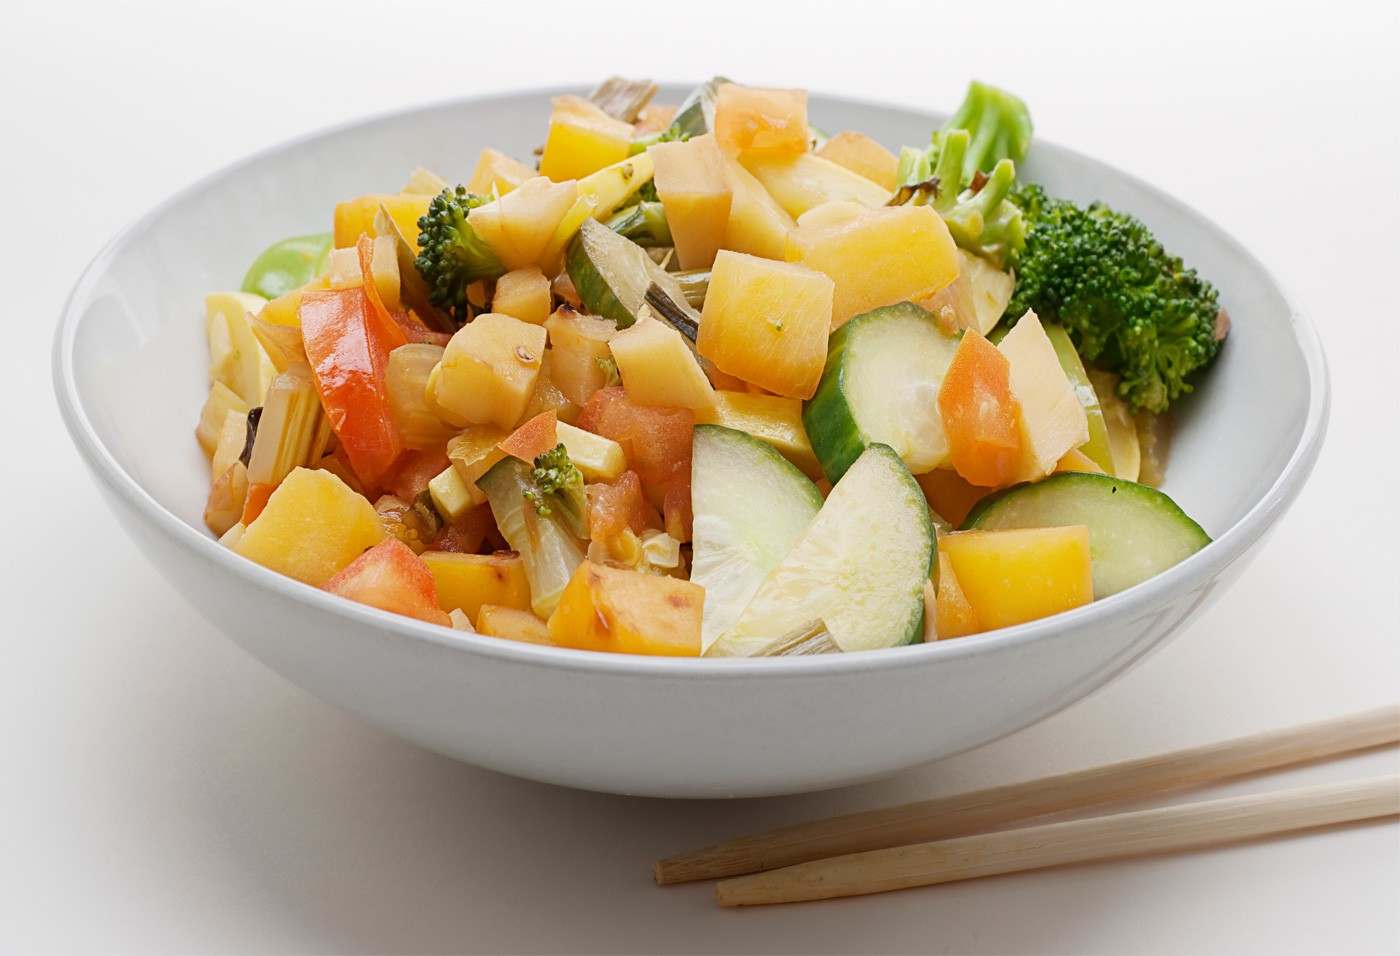 turnips and veggies in a bowl